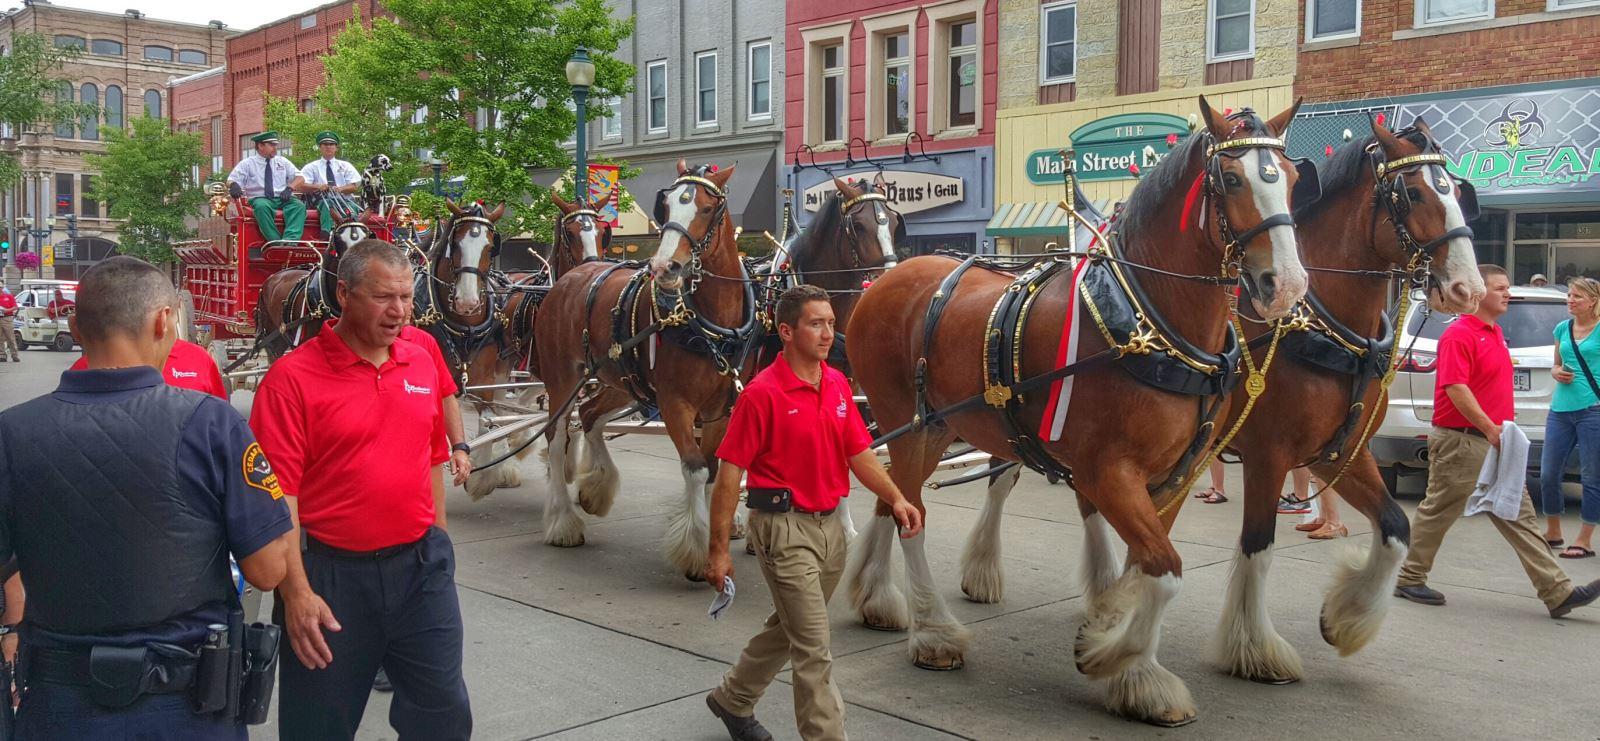 Budweiser Clydesdales on Main Street in Cedar Falls